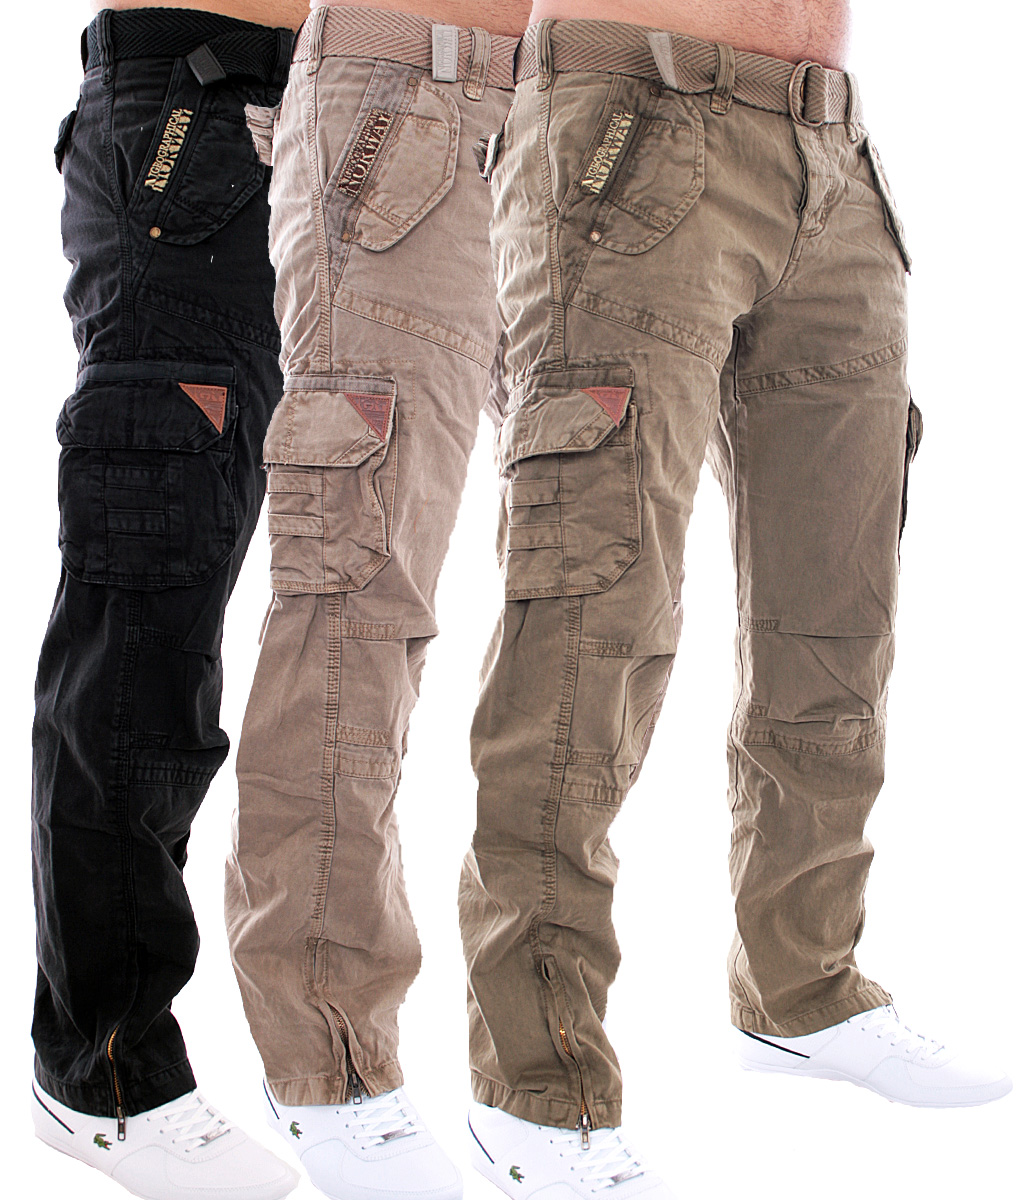 geographical norway herren hose freizeit trousers cargo hose army hose. Black Bedroom Furniture Sets. Home Design Ideas